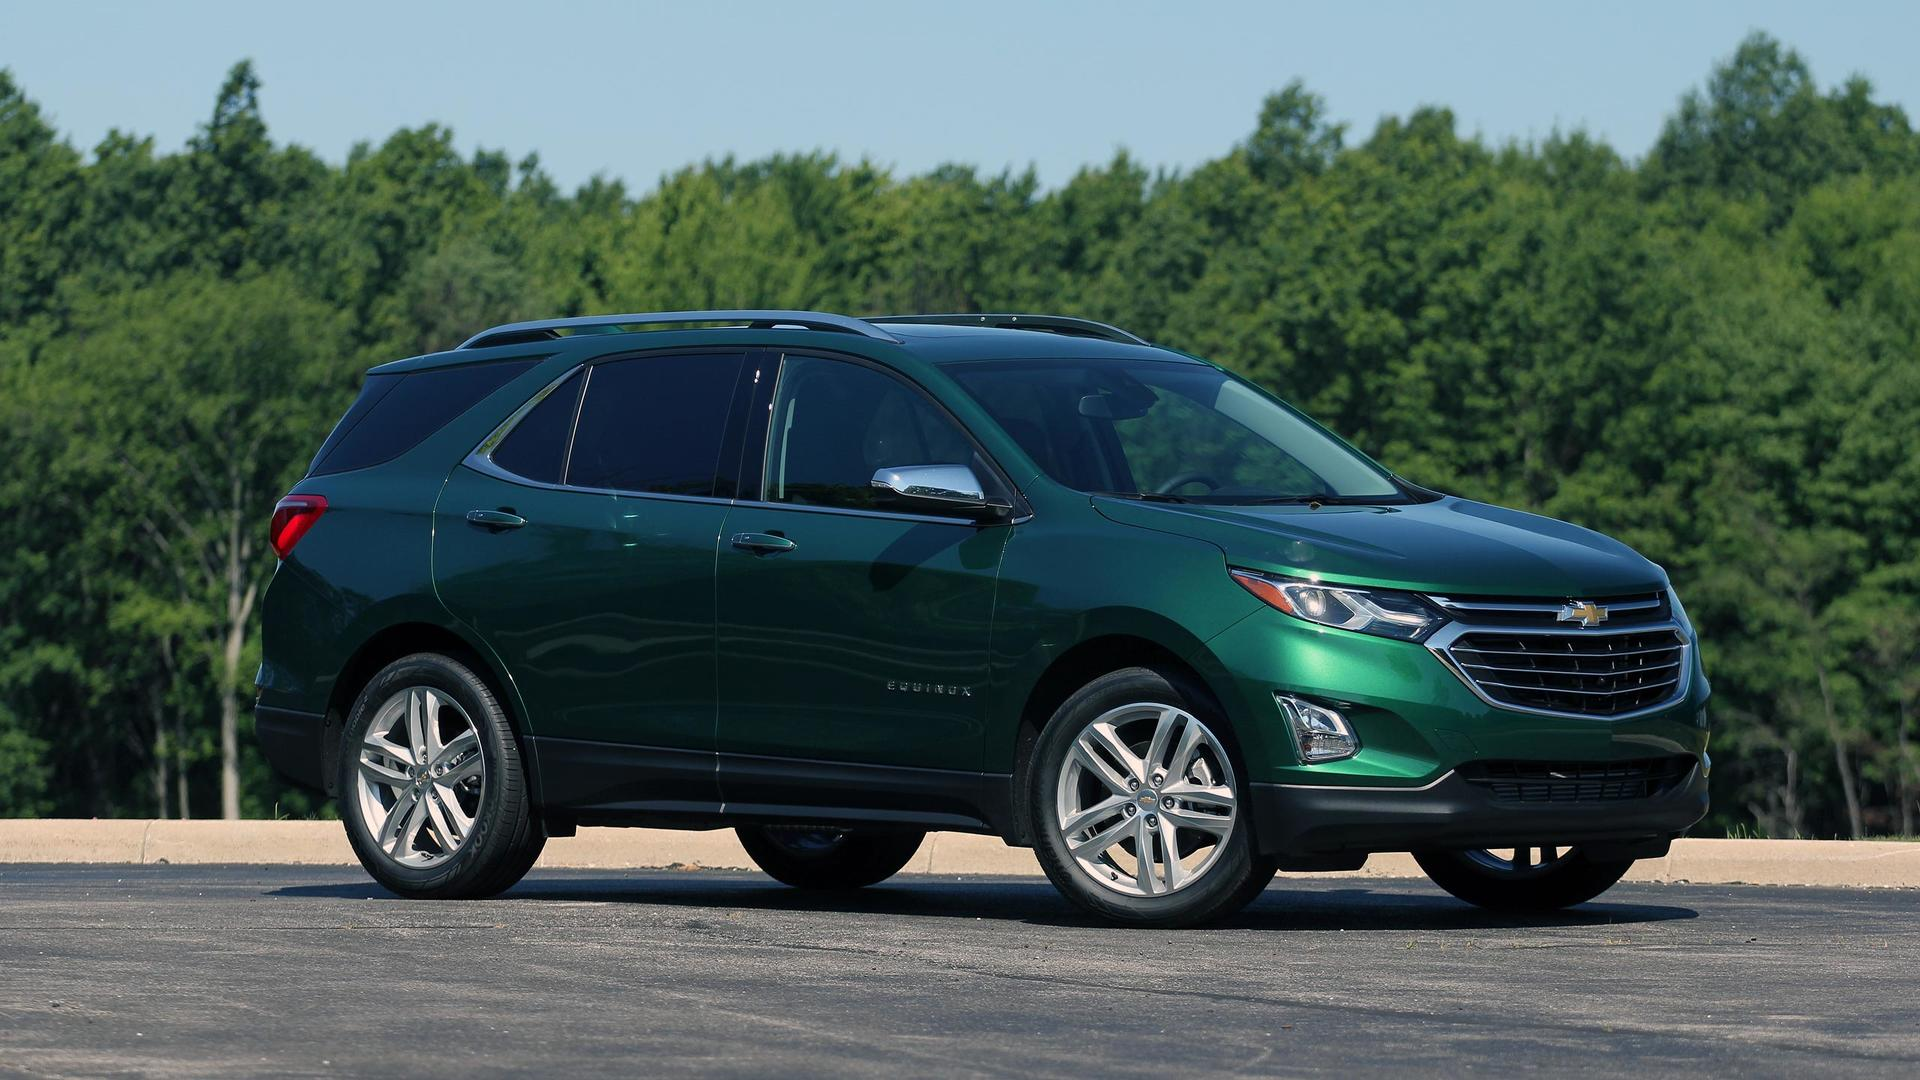 2018 chevrolet equinox review finally up to par. Black Bedroom Furniture Sets. Home Design Ideas